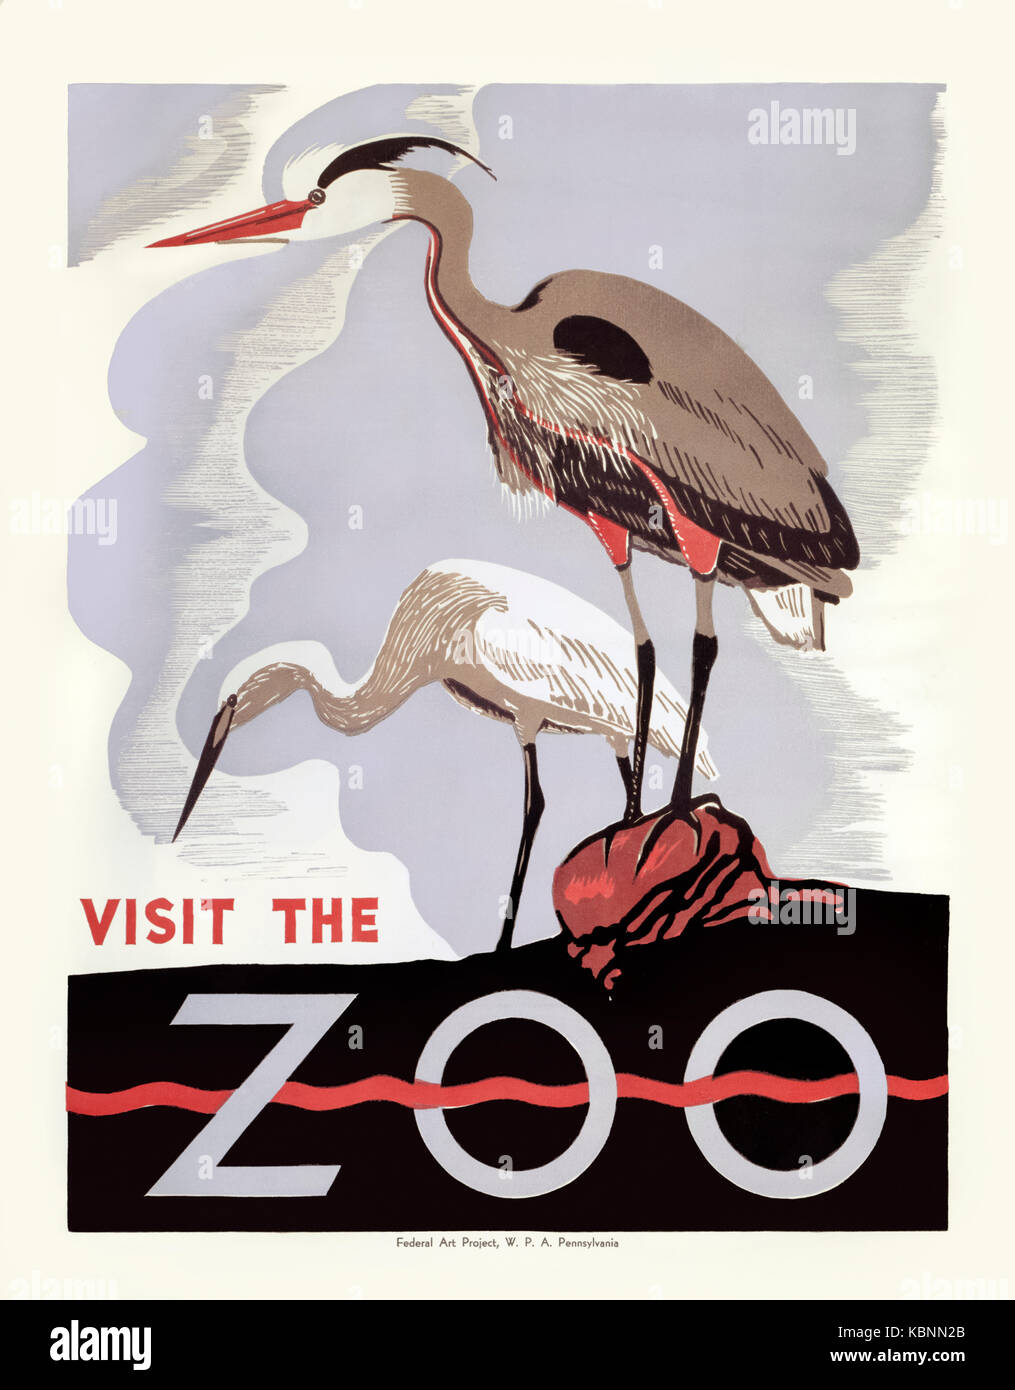 """""""Visit the Zoo"""" 1936 poster for Philadephia Zoo featuring a woodblock print of two herons. Produced under the Federal - Stock Image"""